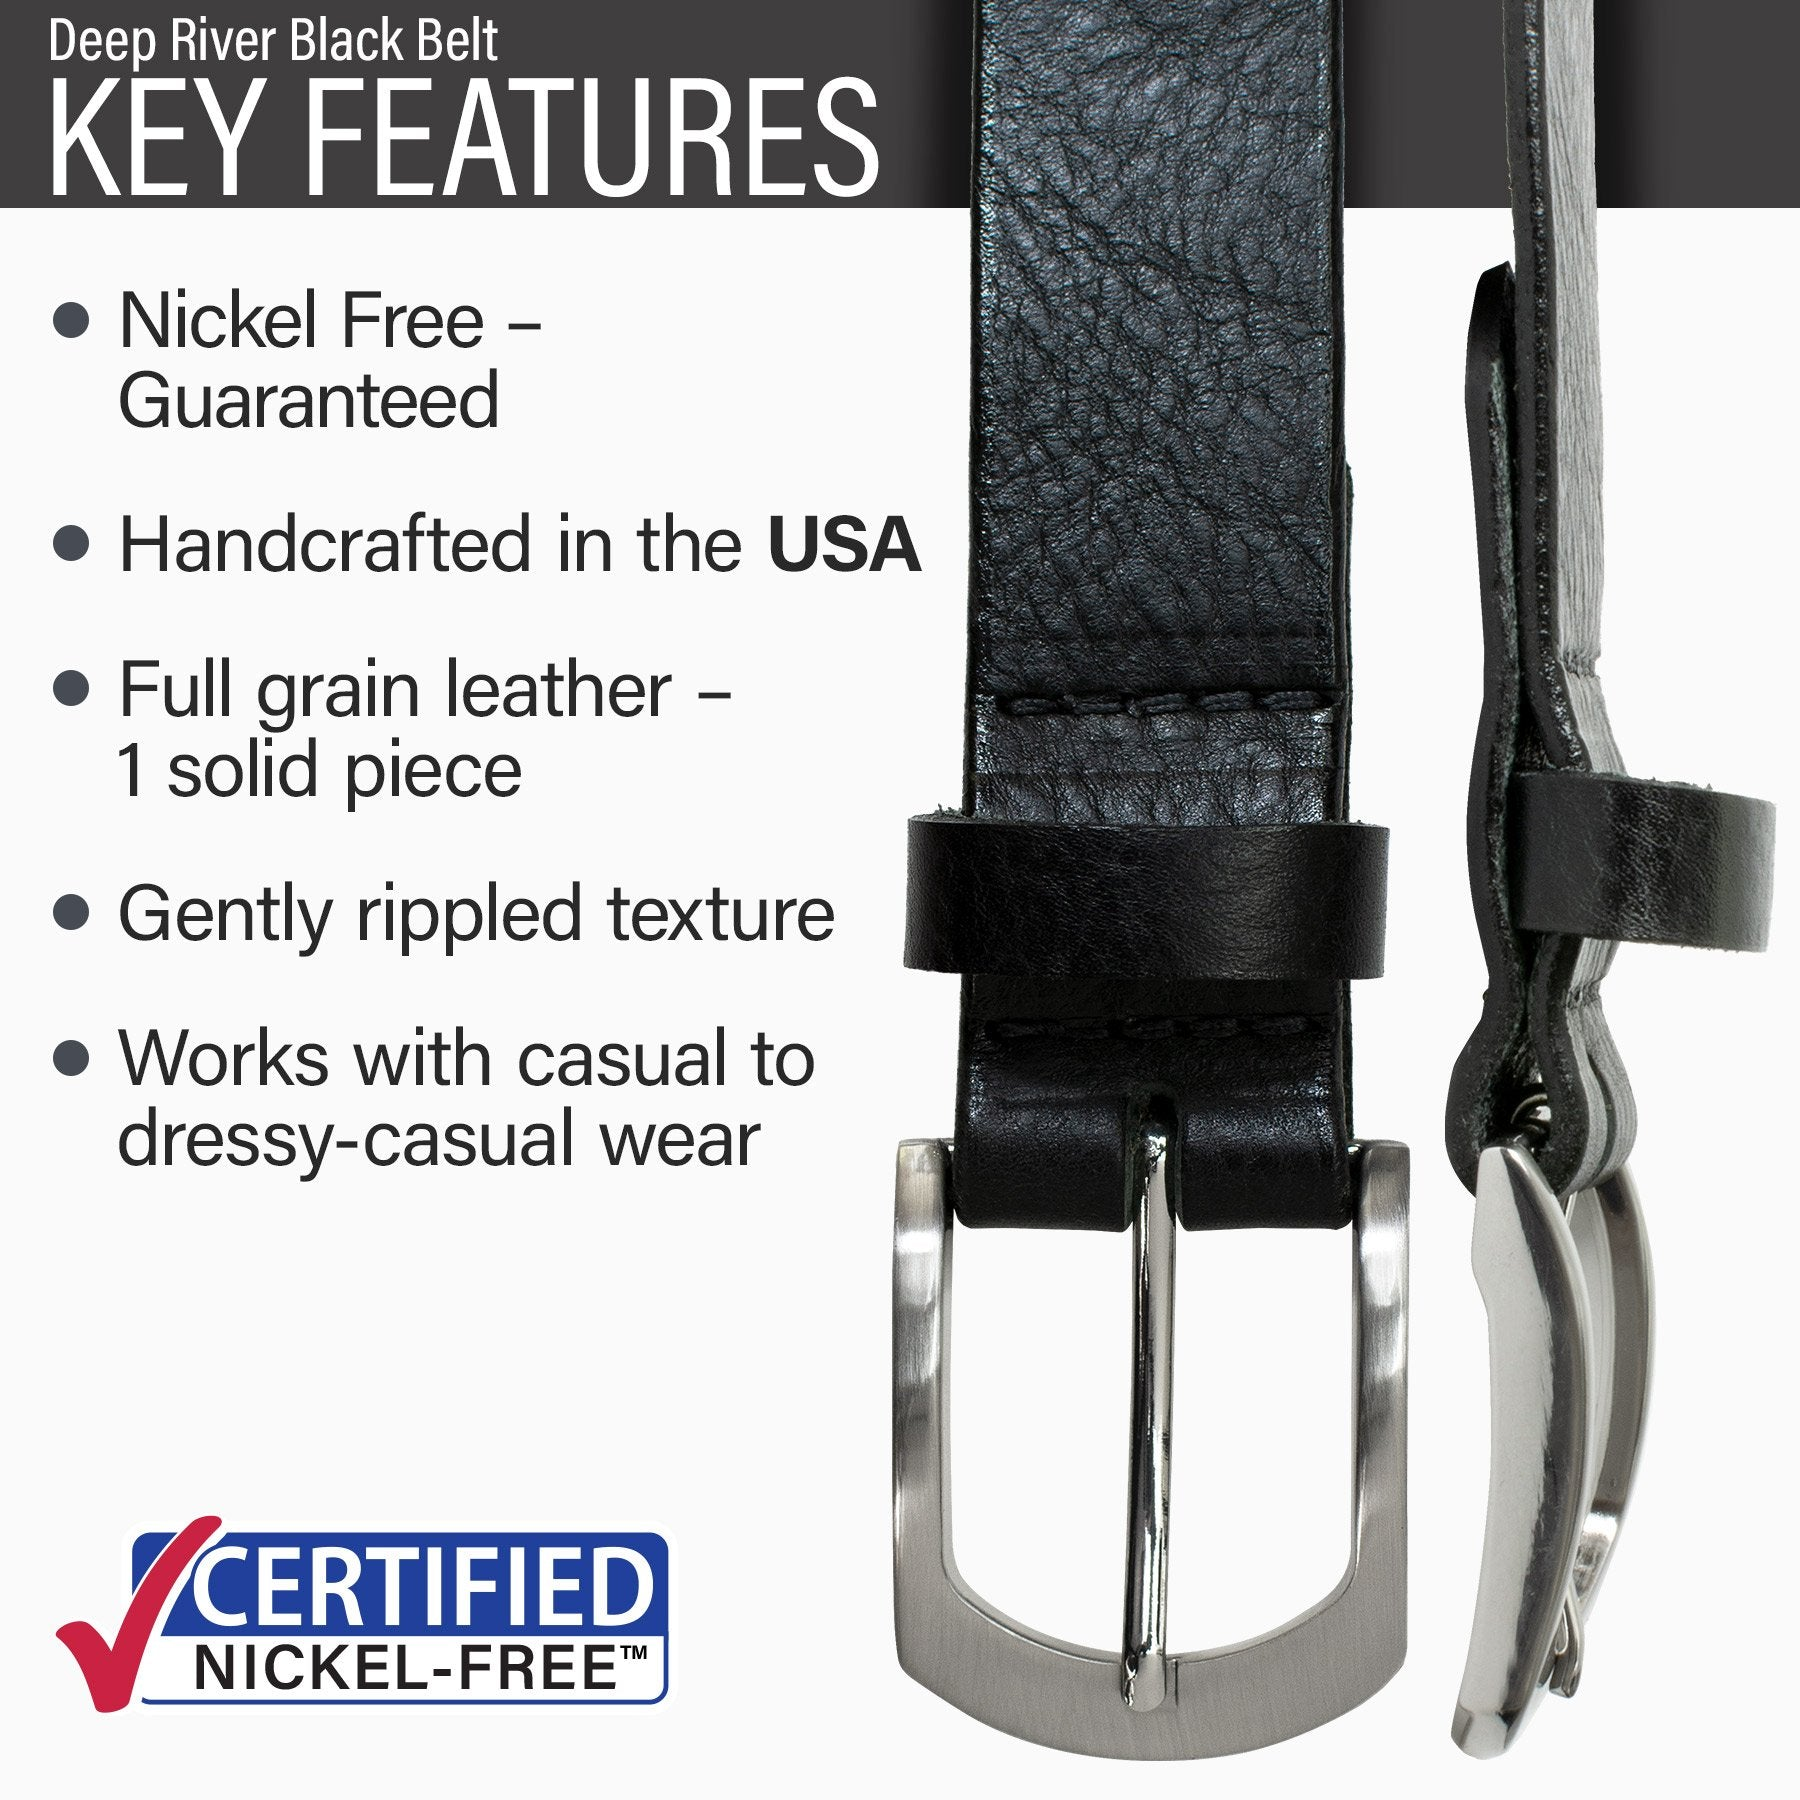 Key features of Deep River Nickel Free Black Leather Belt | Hypoallergenic buckle, made in the USA, stitched on nickel-free buckle, full grain leather with gently rippled texture, dressy-casual to casual wear